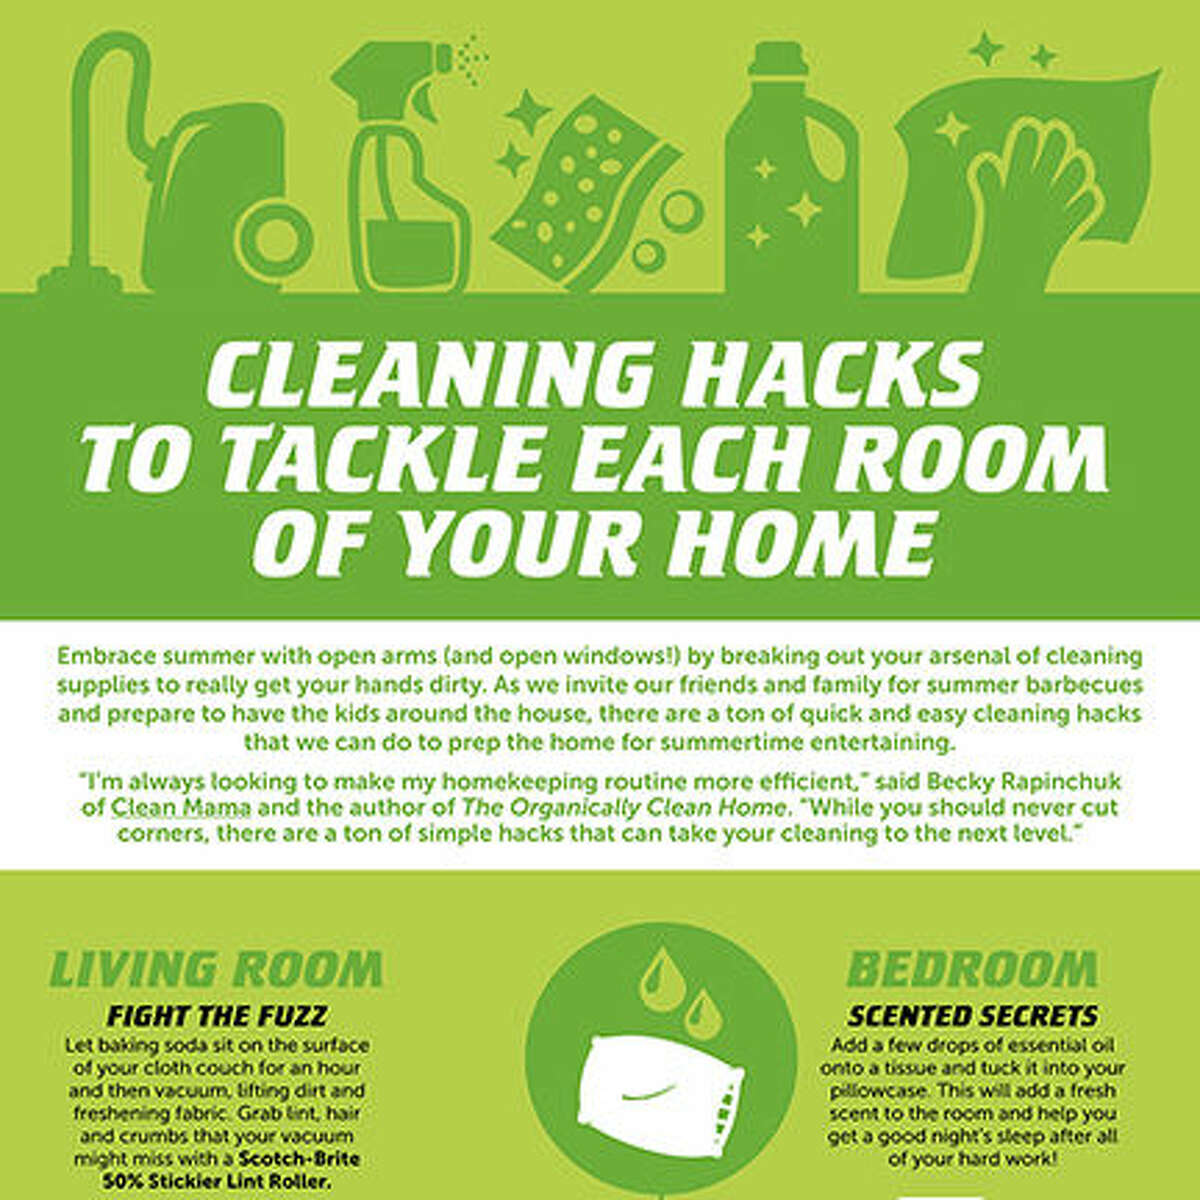 Cleaning Hacks to Tackle Each Room of Your Home